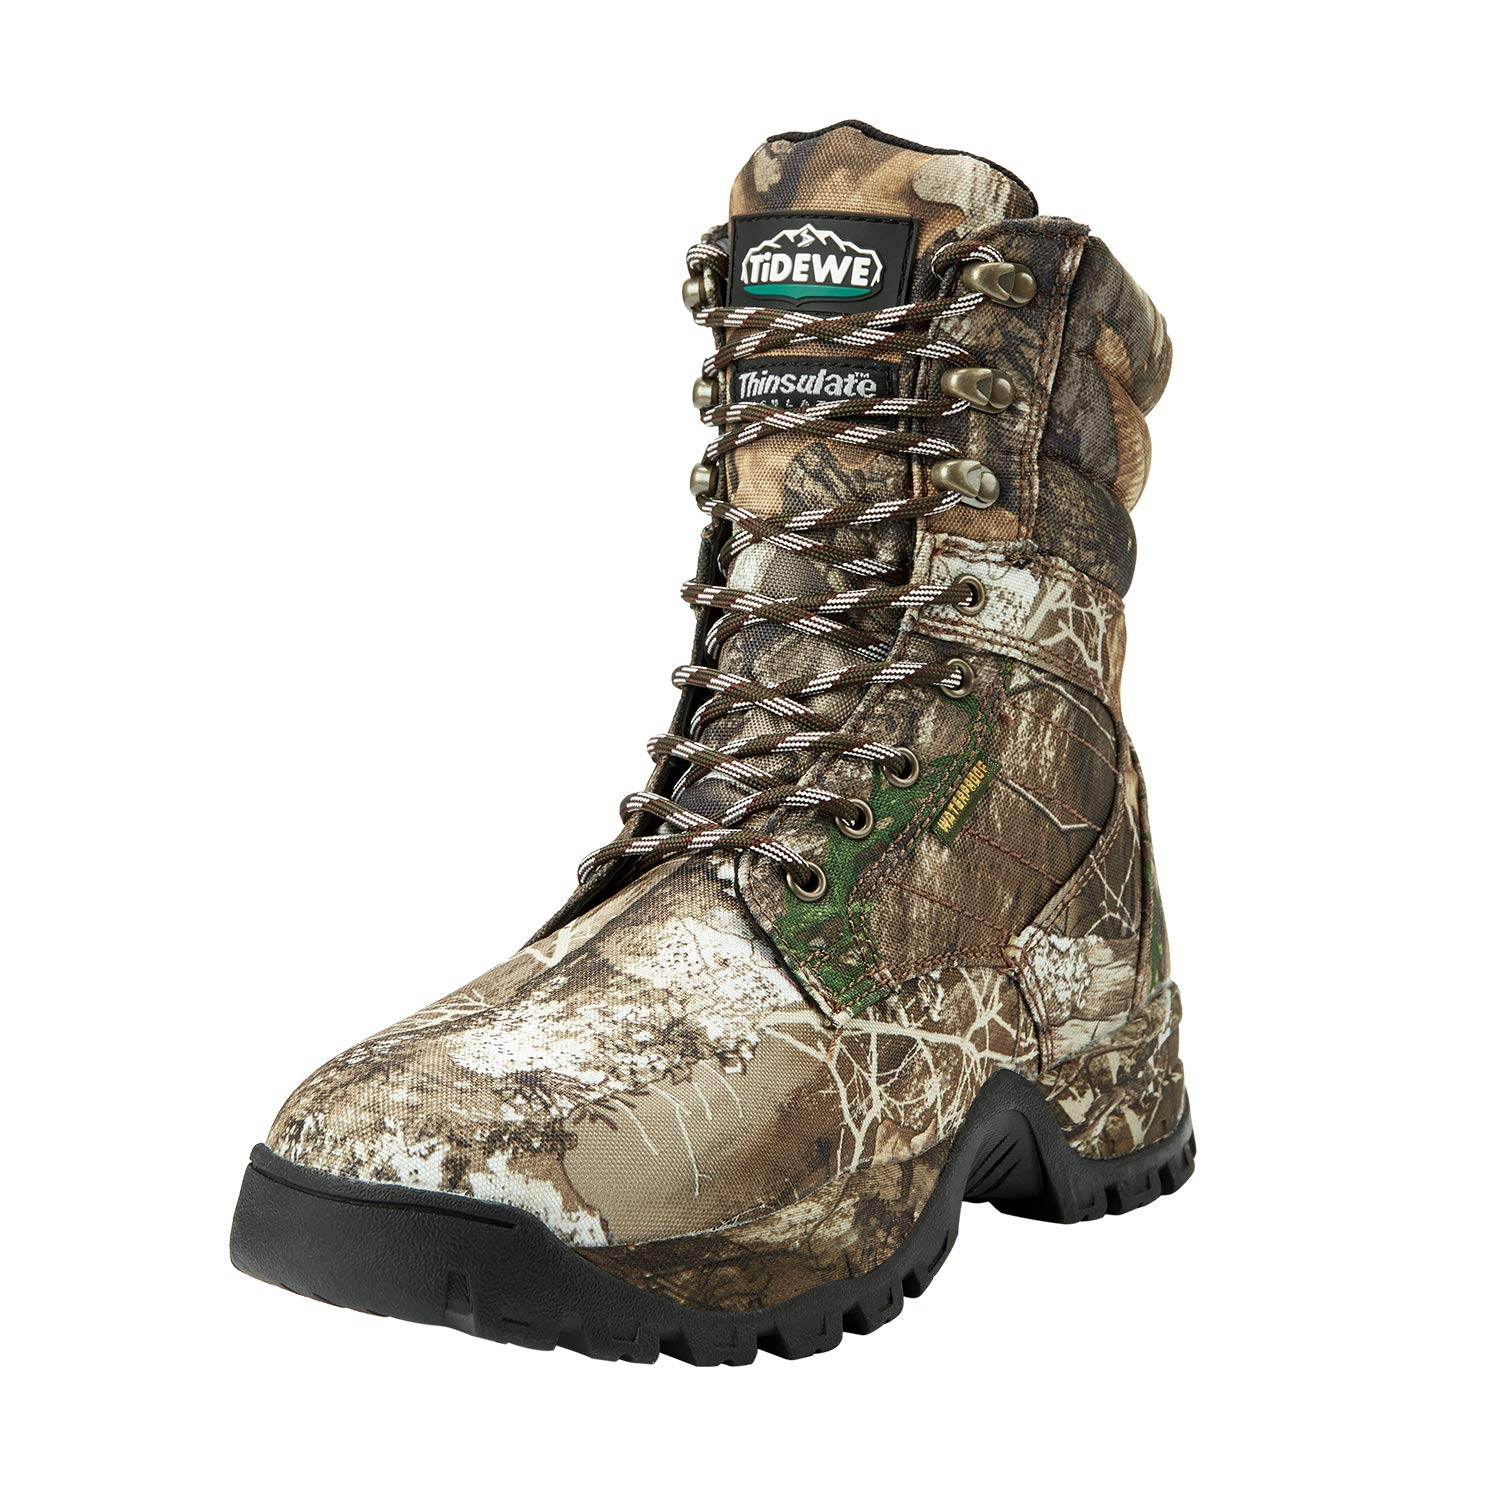 TideWe Hunting Boot for Men, Insulated 400G 8'' Hunting Boot, Breathable Mid-Rise Outdoor Hiking Boot, Realtree Camo Edge (Size 8)